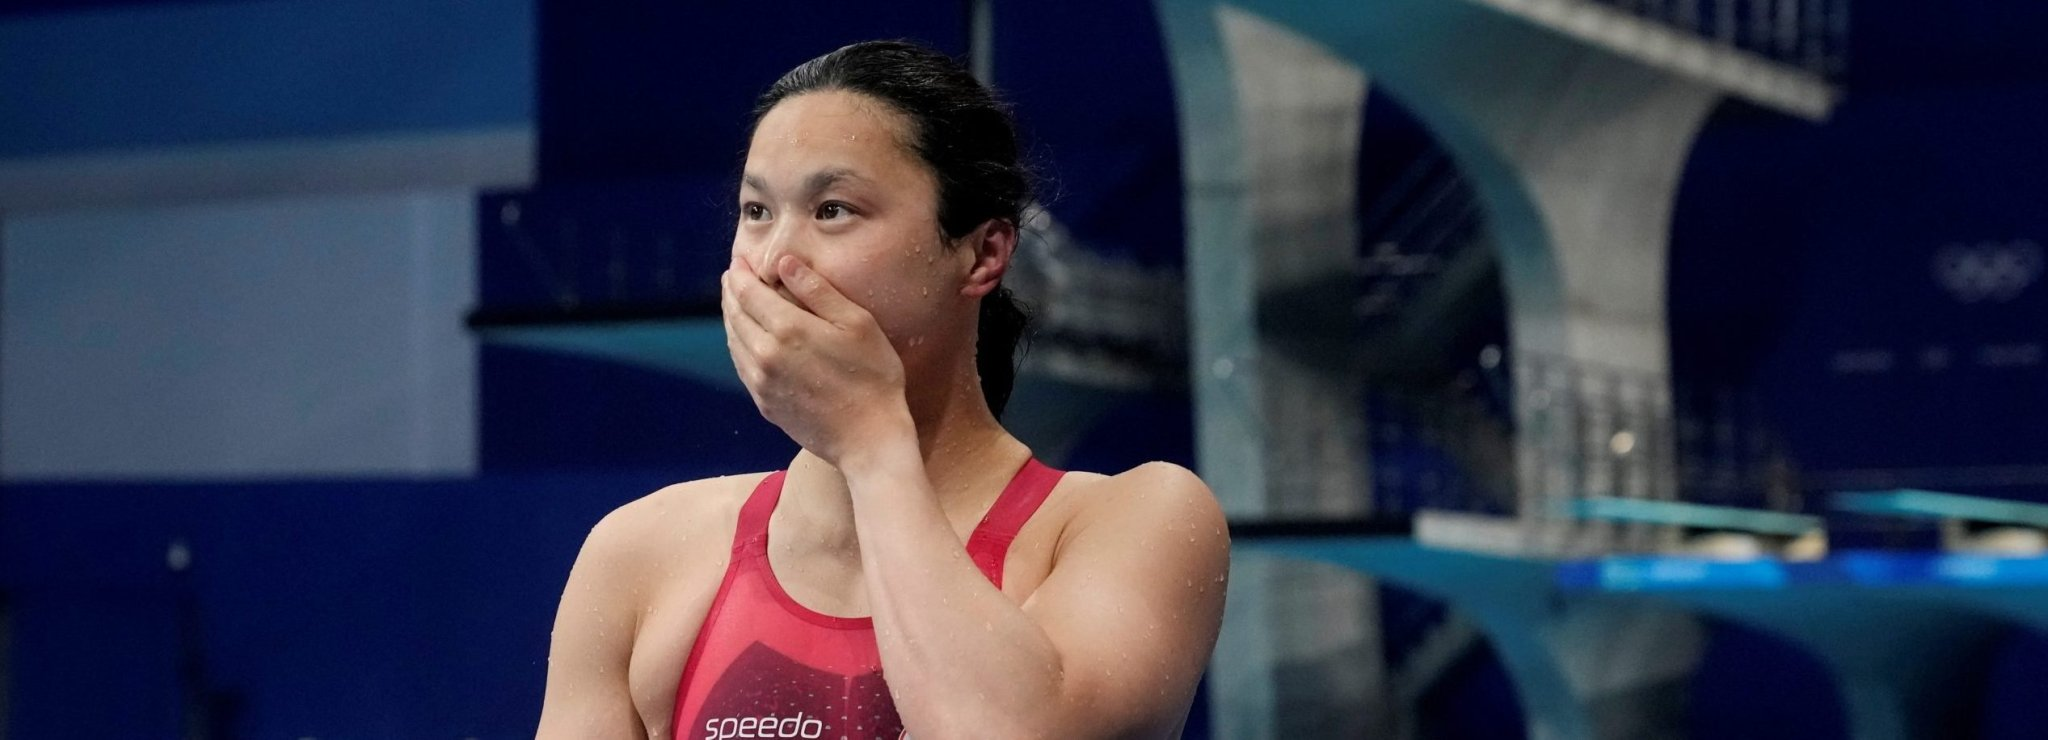 Olympics-Swimming-Out of sight! Canada's MacNeil wows rivals in 100m fly